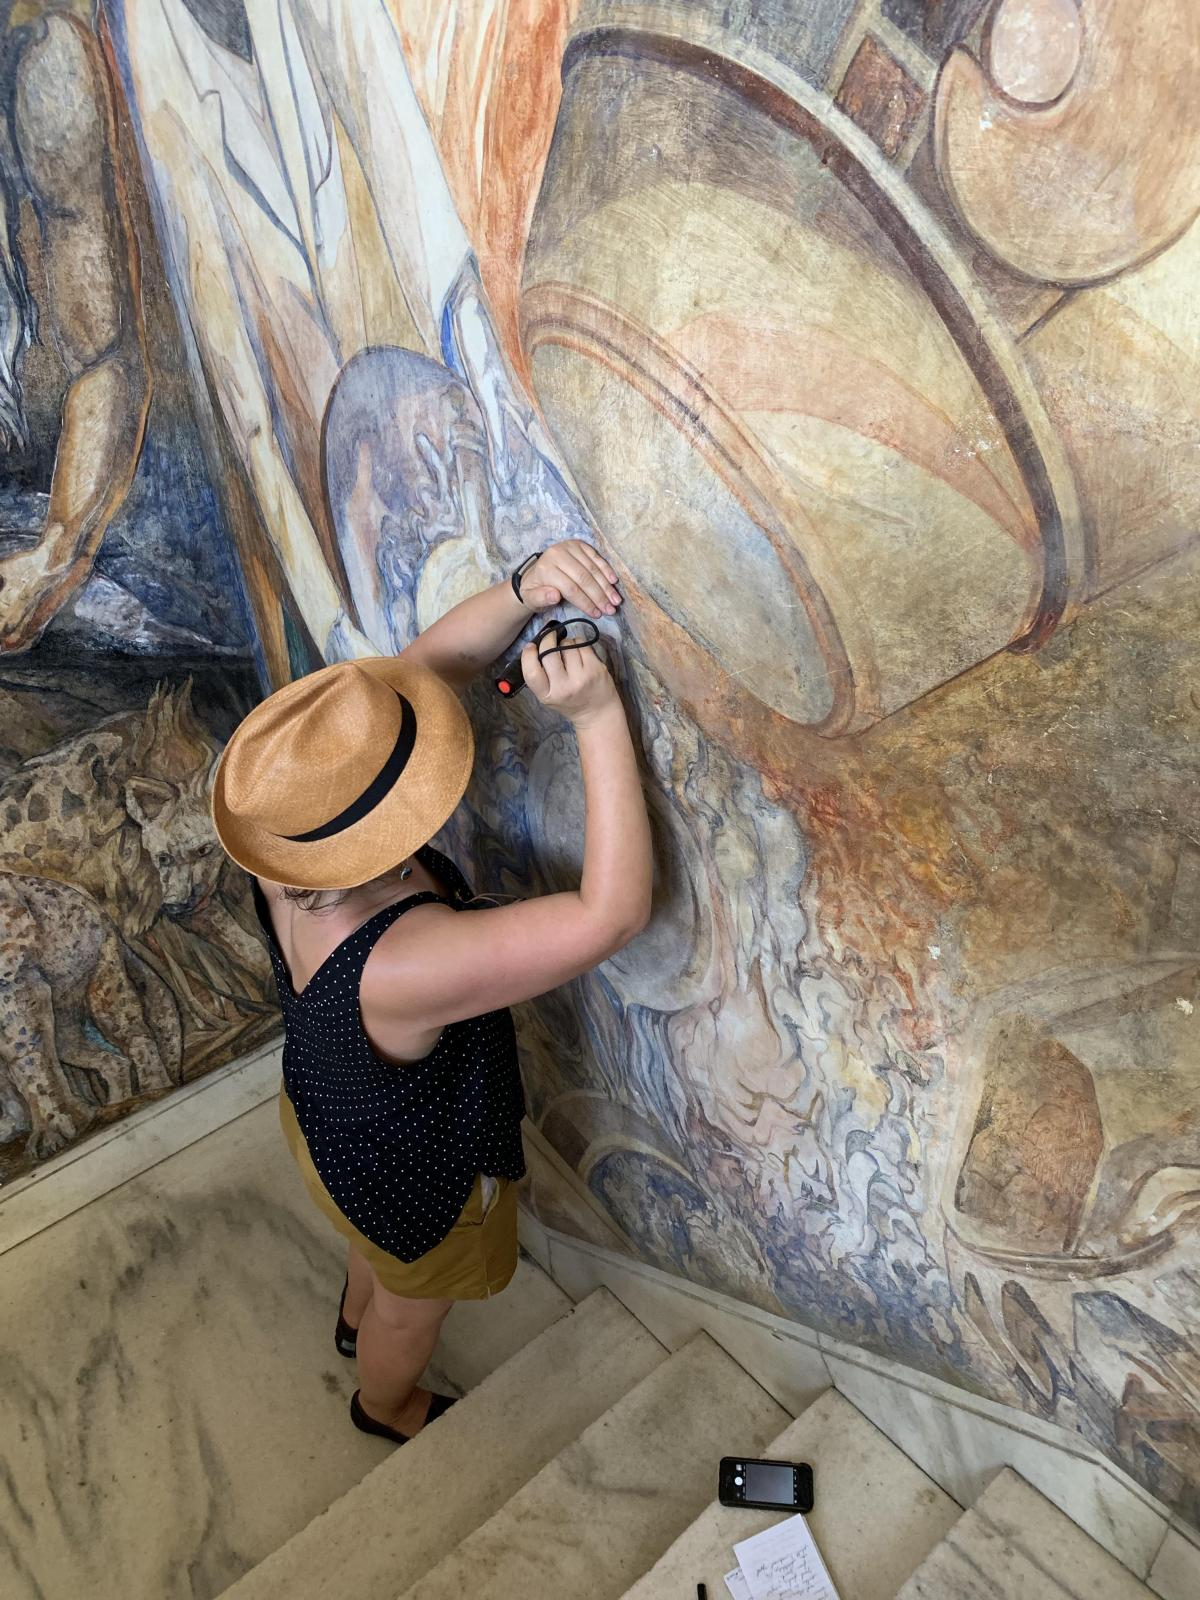 SAAM conservator Gwen Manthey examining a mural for damage